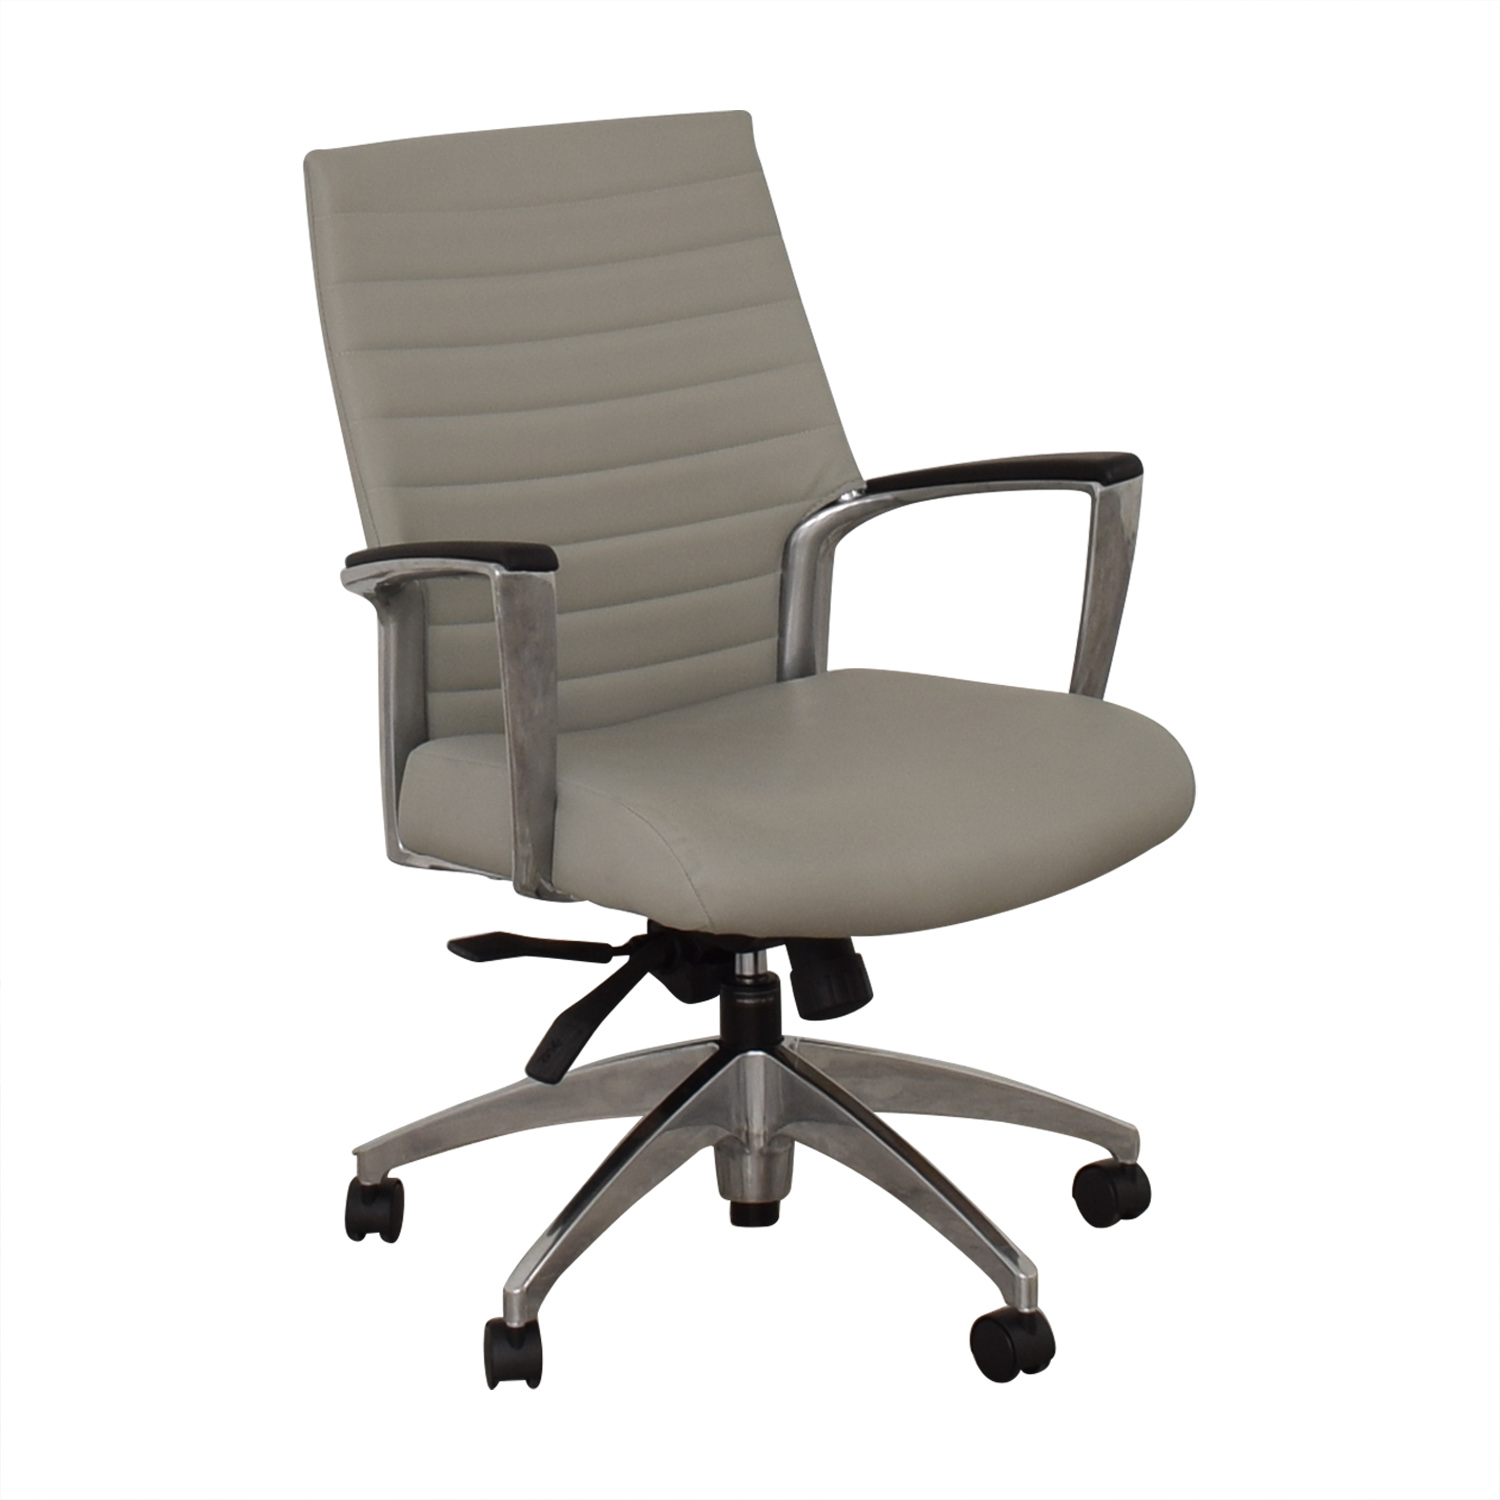 Global Global Accord Upholstered Medium Back Tilter Chair price